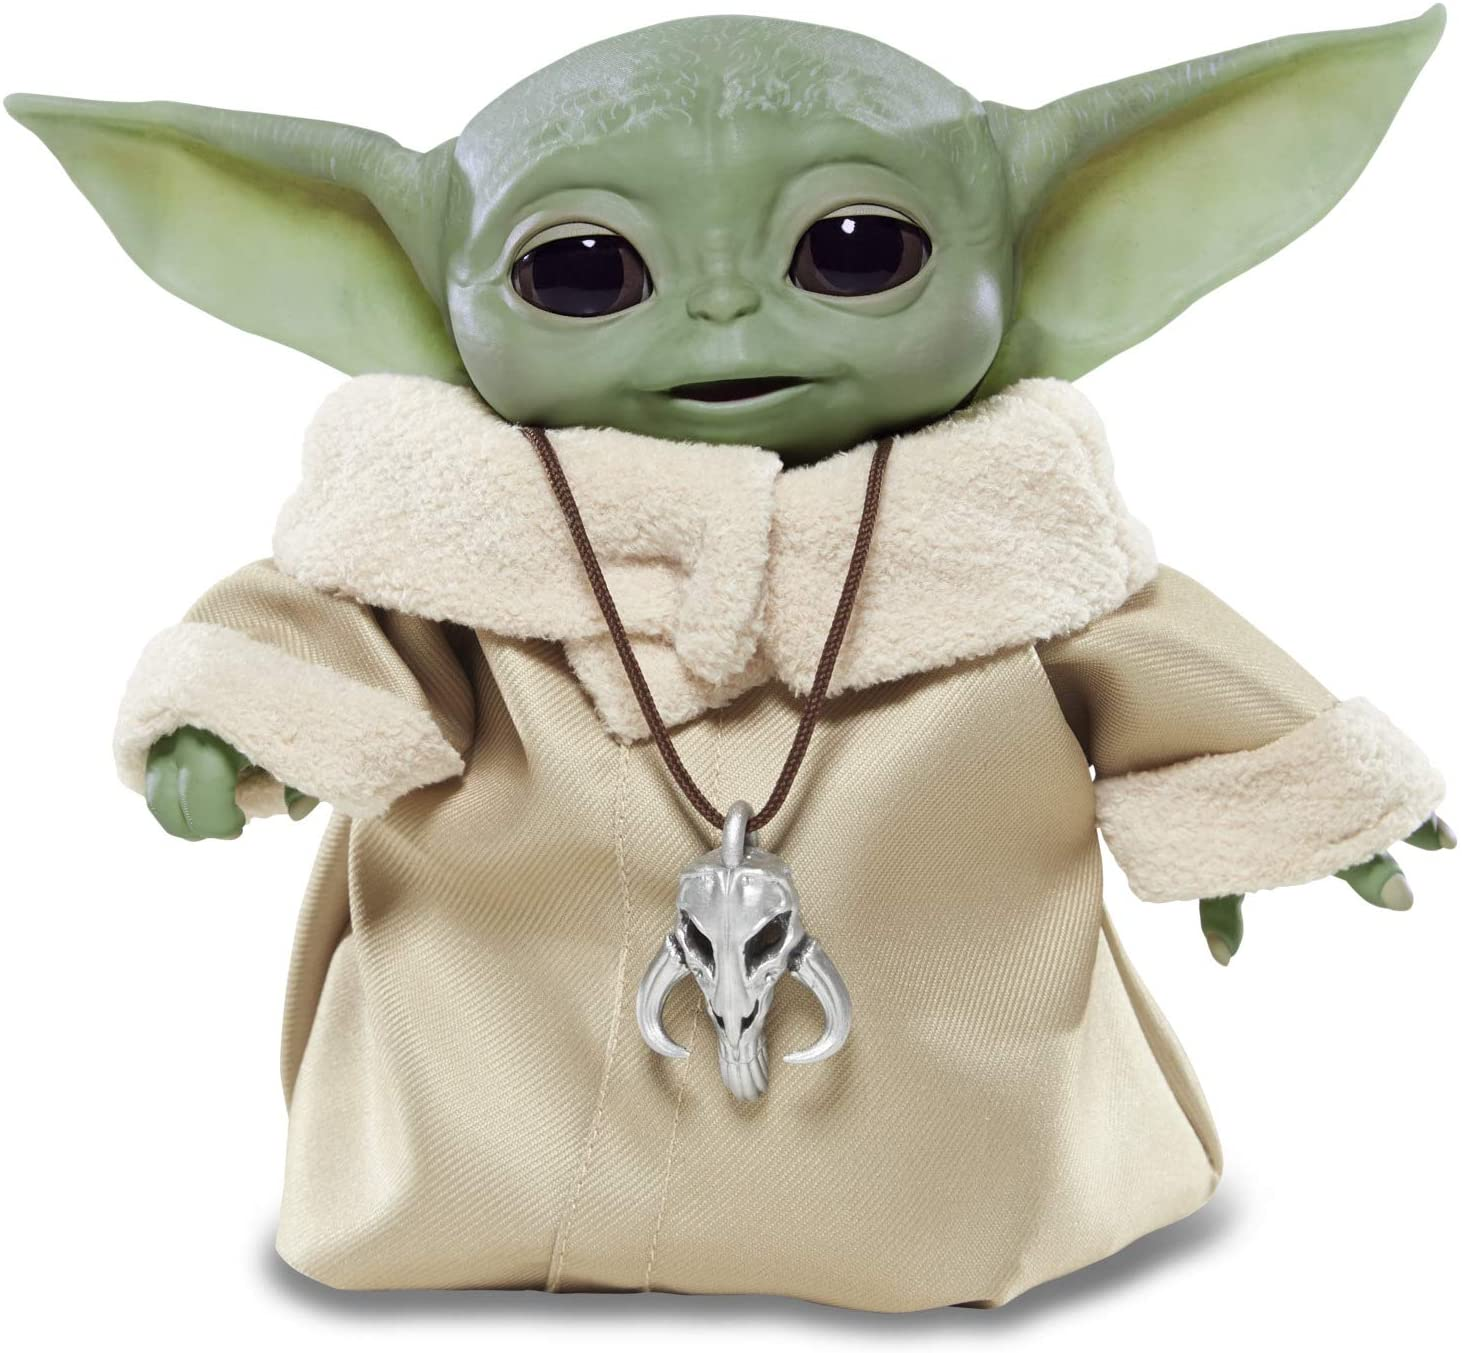 """Star Wars The Child Animatronic Edition """"AKA Baby Yoda"""" with Over 25 Sound and Motion Combinations 25% OFF £45 @ Amazon"""